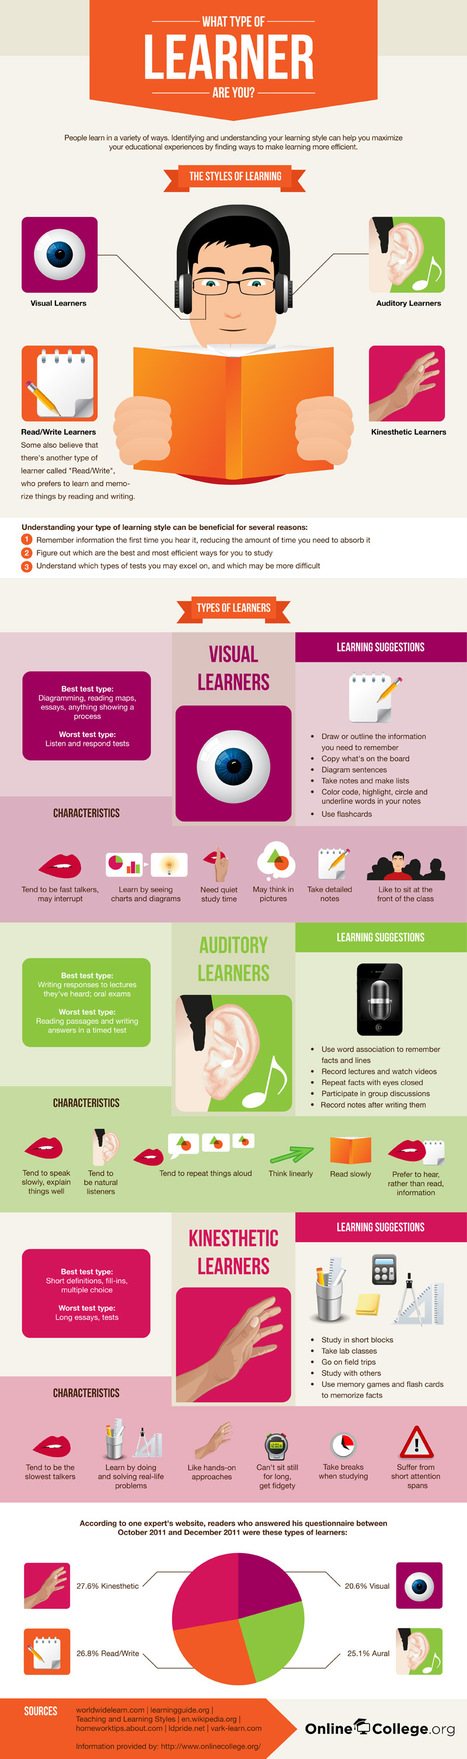 What Type of Learner Are You? [Infographic] | Aprendiendo a Distancia | Scoop.it